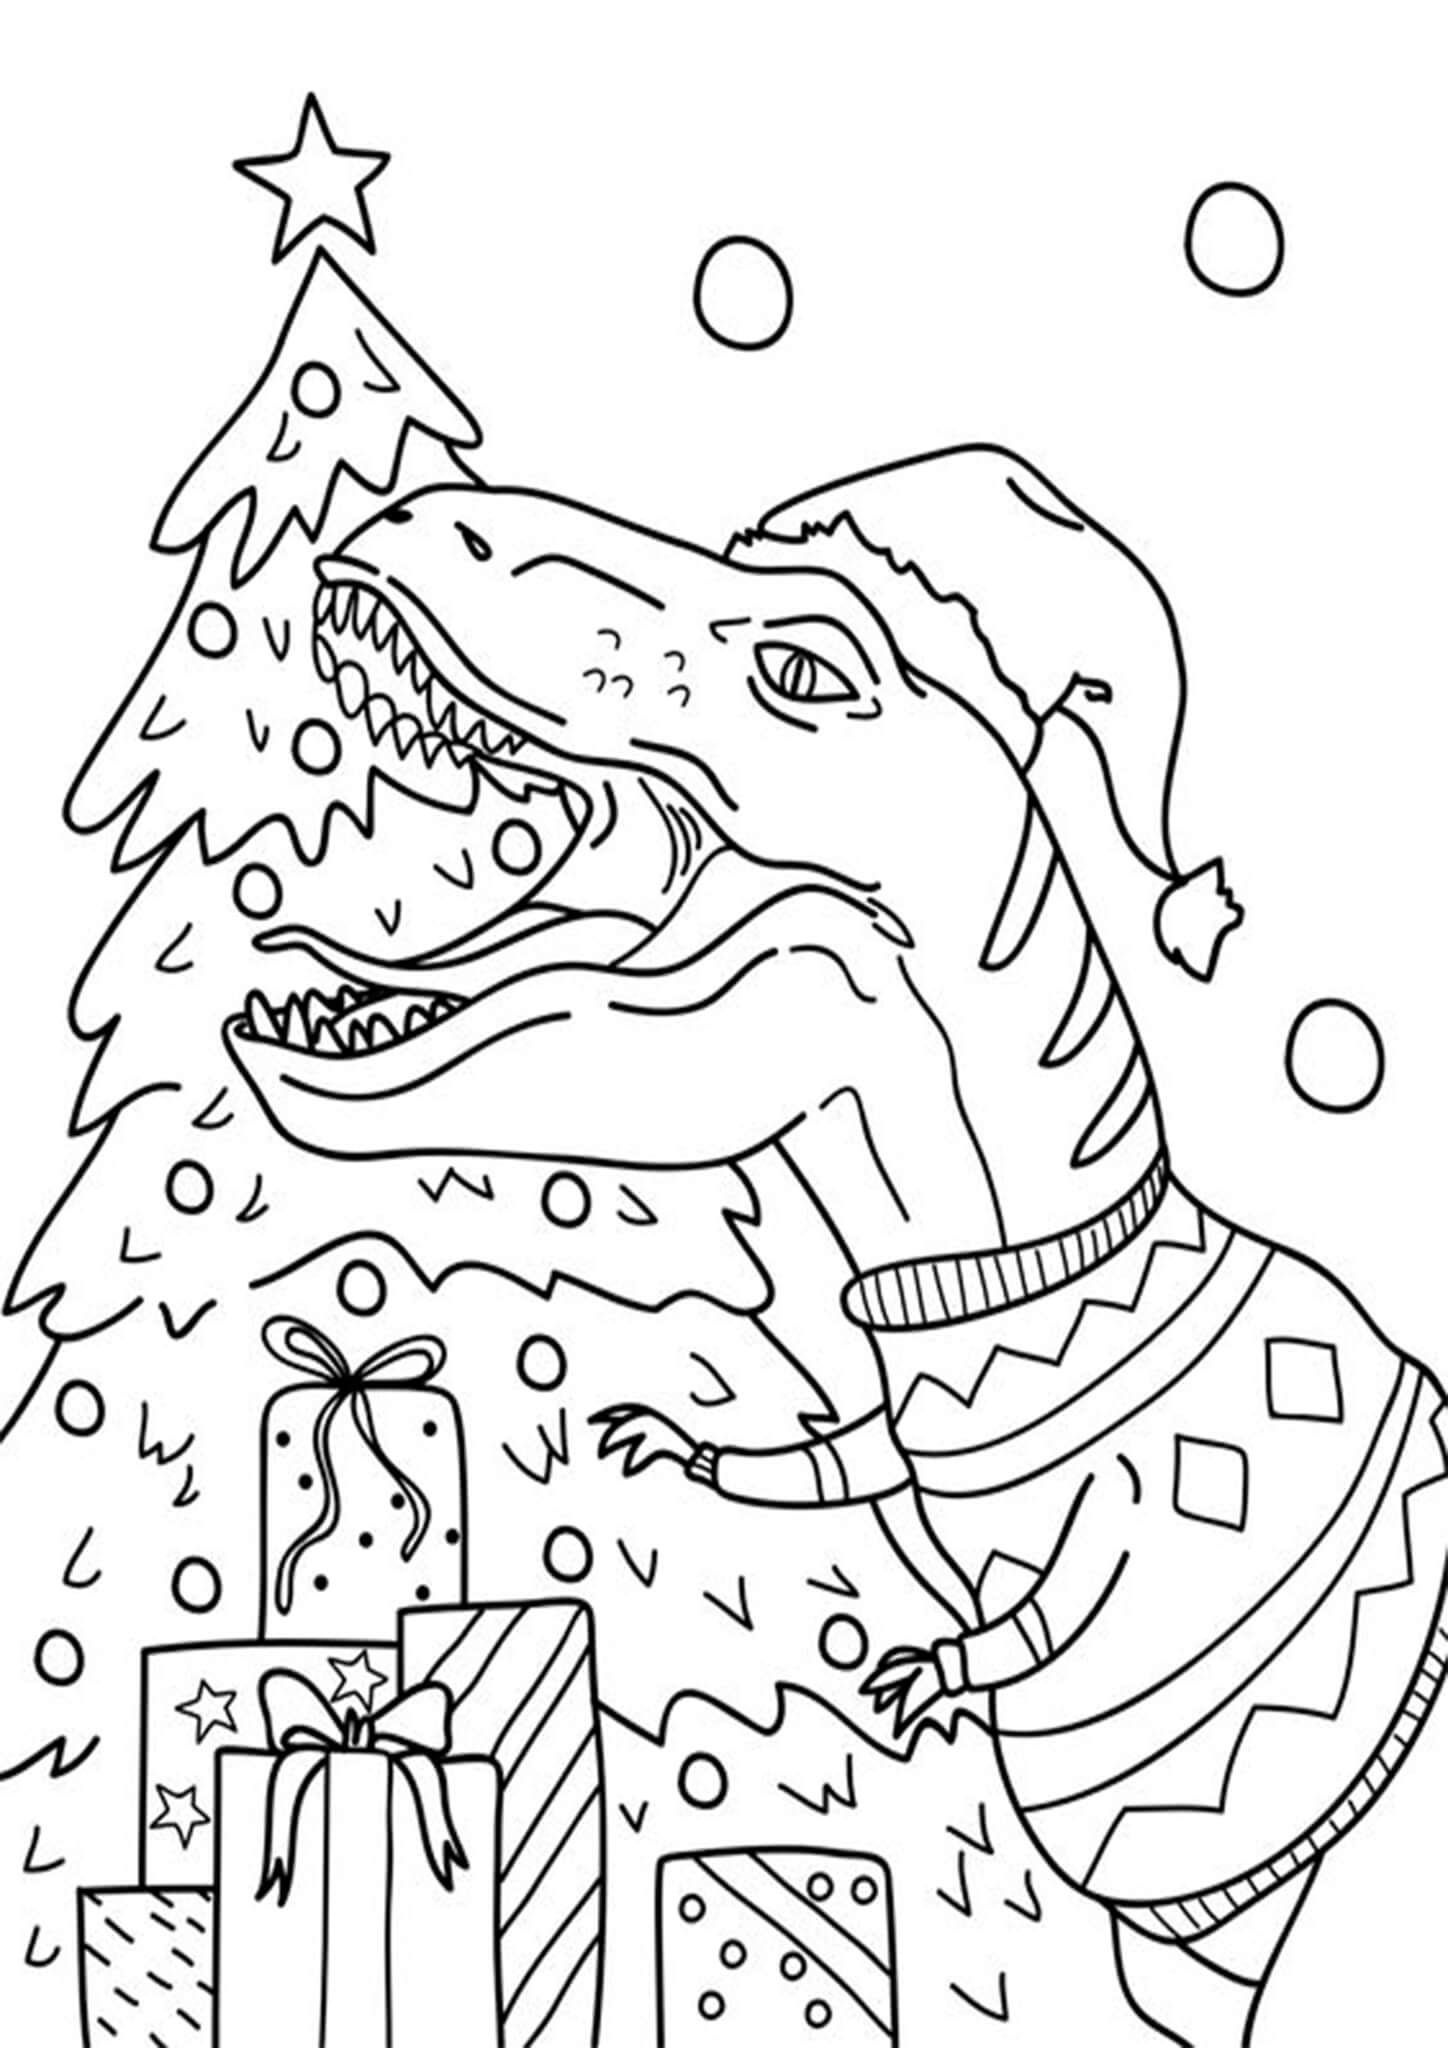 Free Easy To Print Christmas Tree Coloring Pages Christmas Coloring Printables Printable Christmas Coloring Pages Free Christmas Coloring Pages